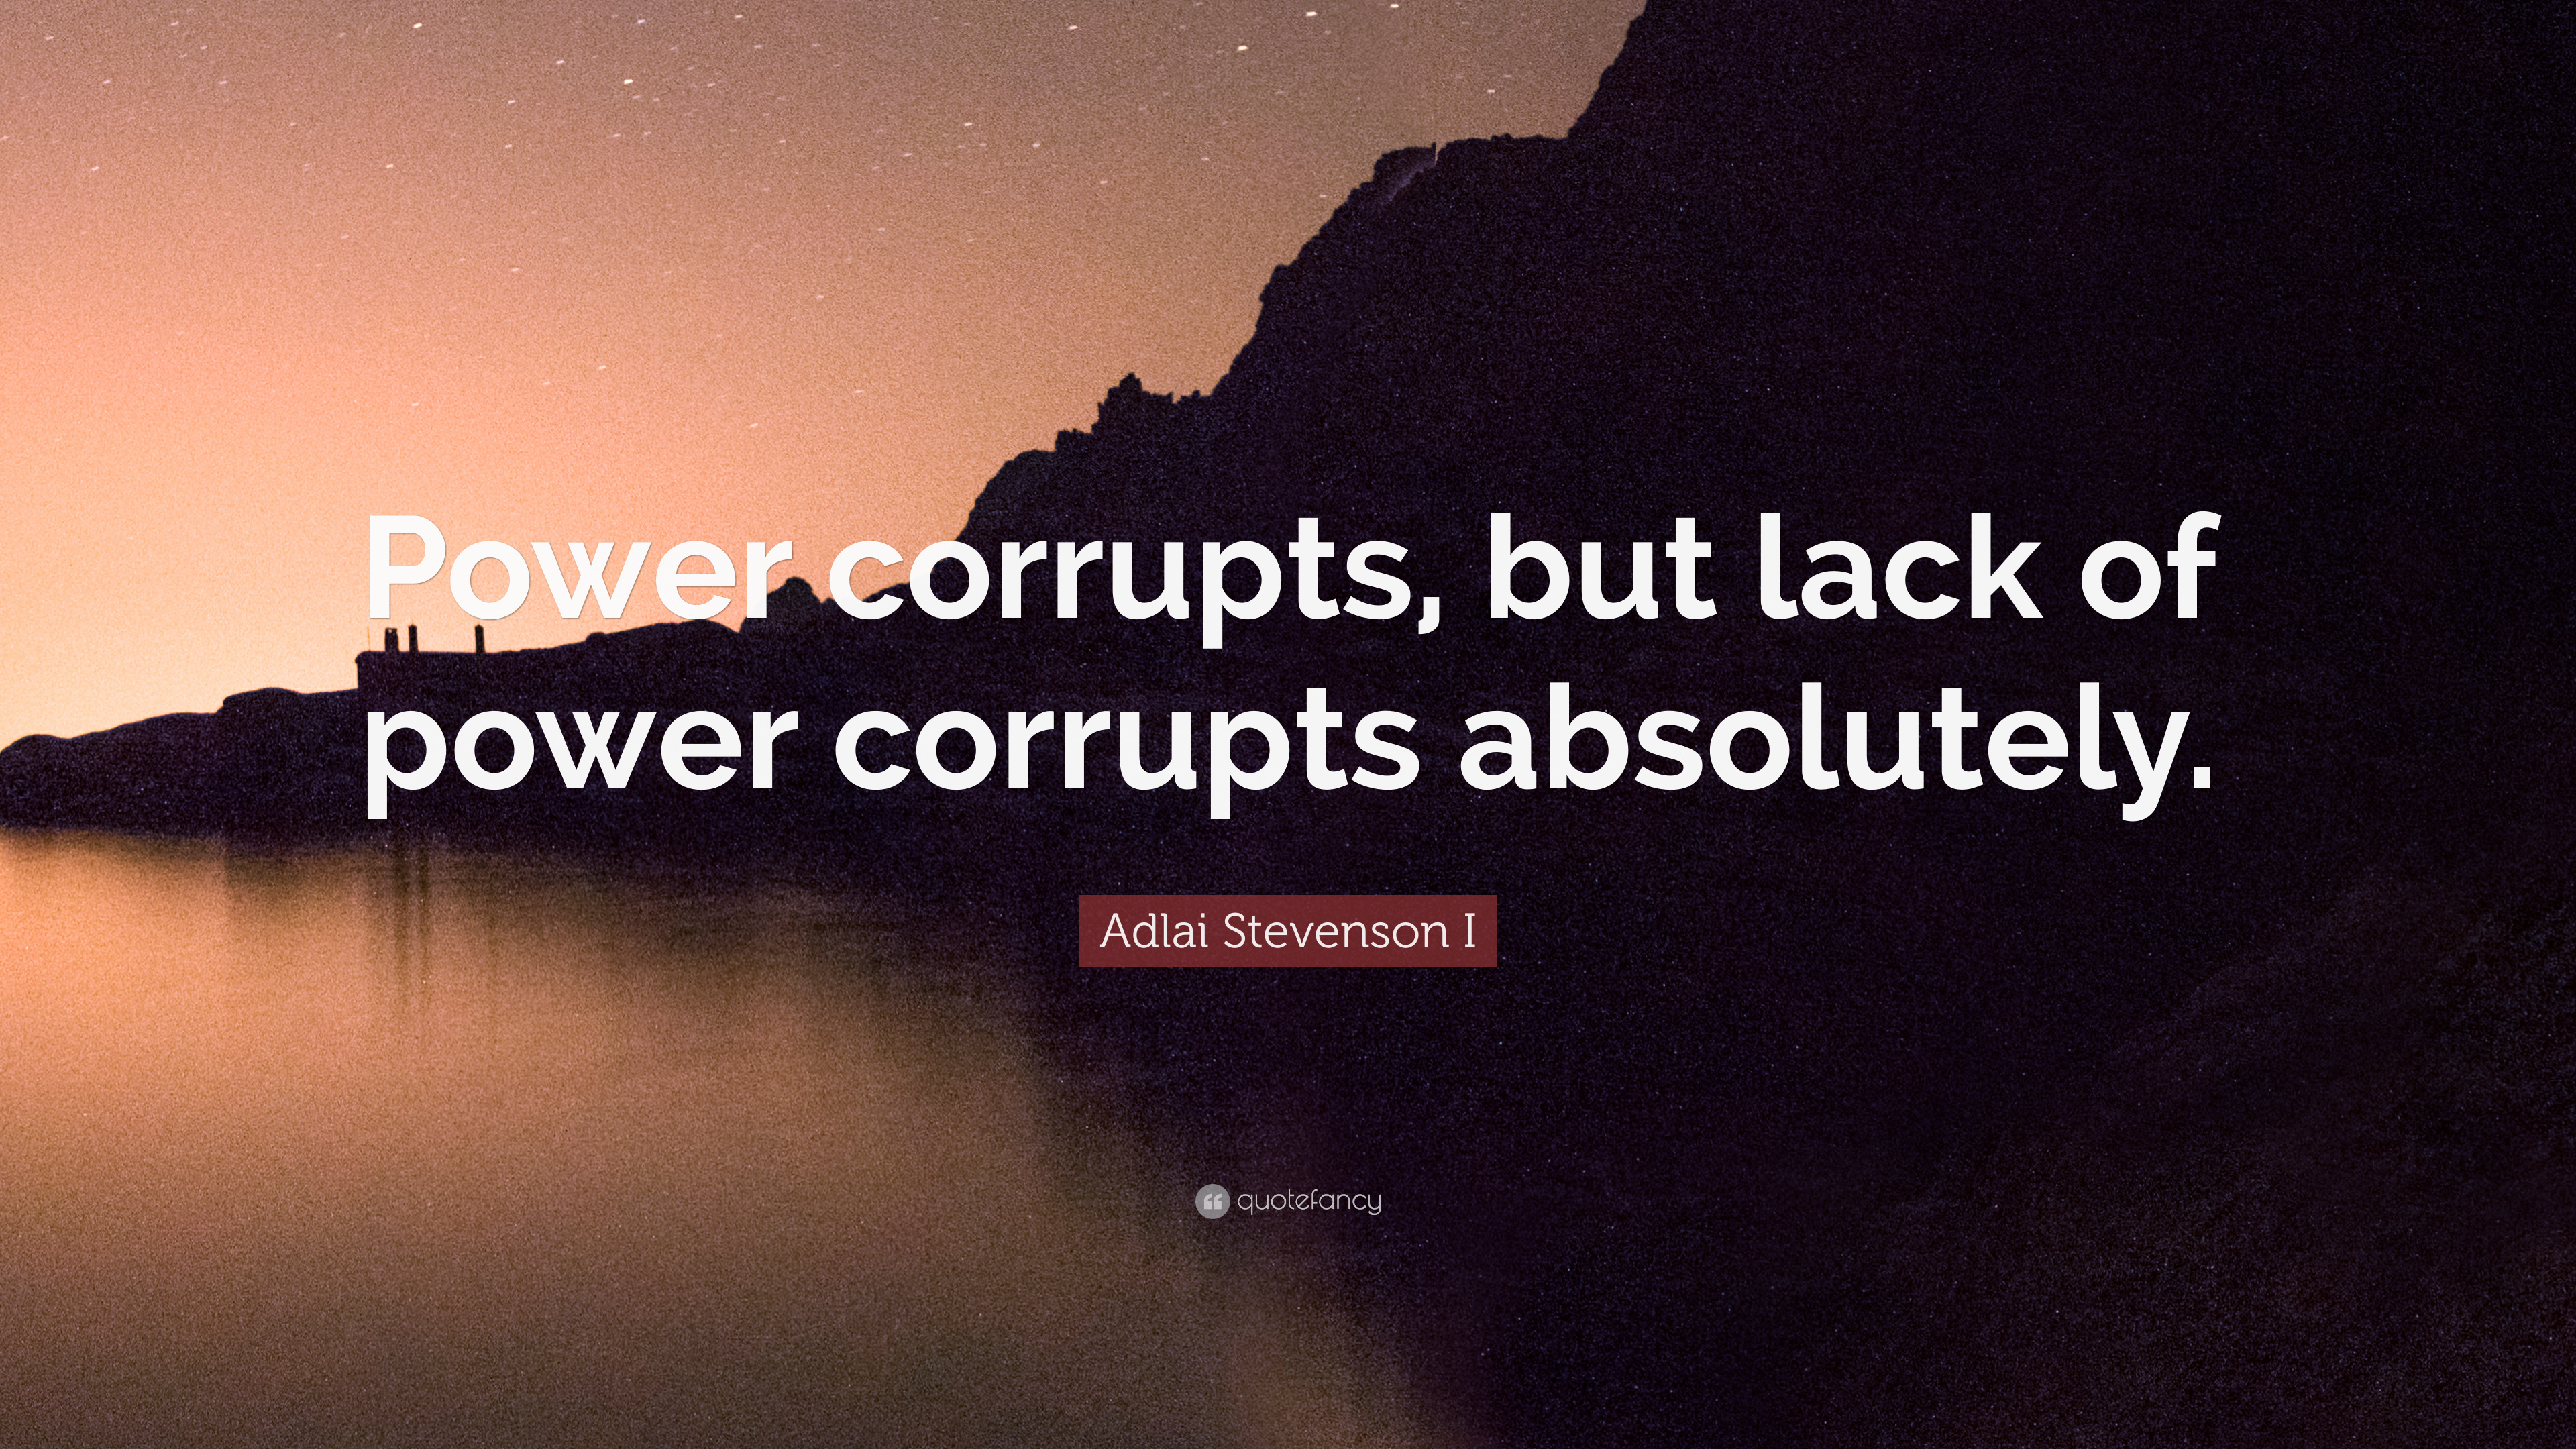 power corrupts quote